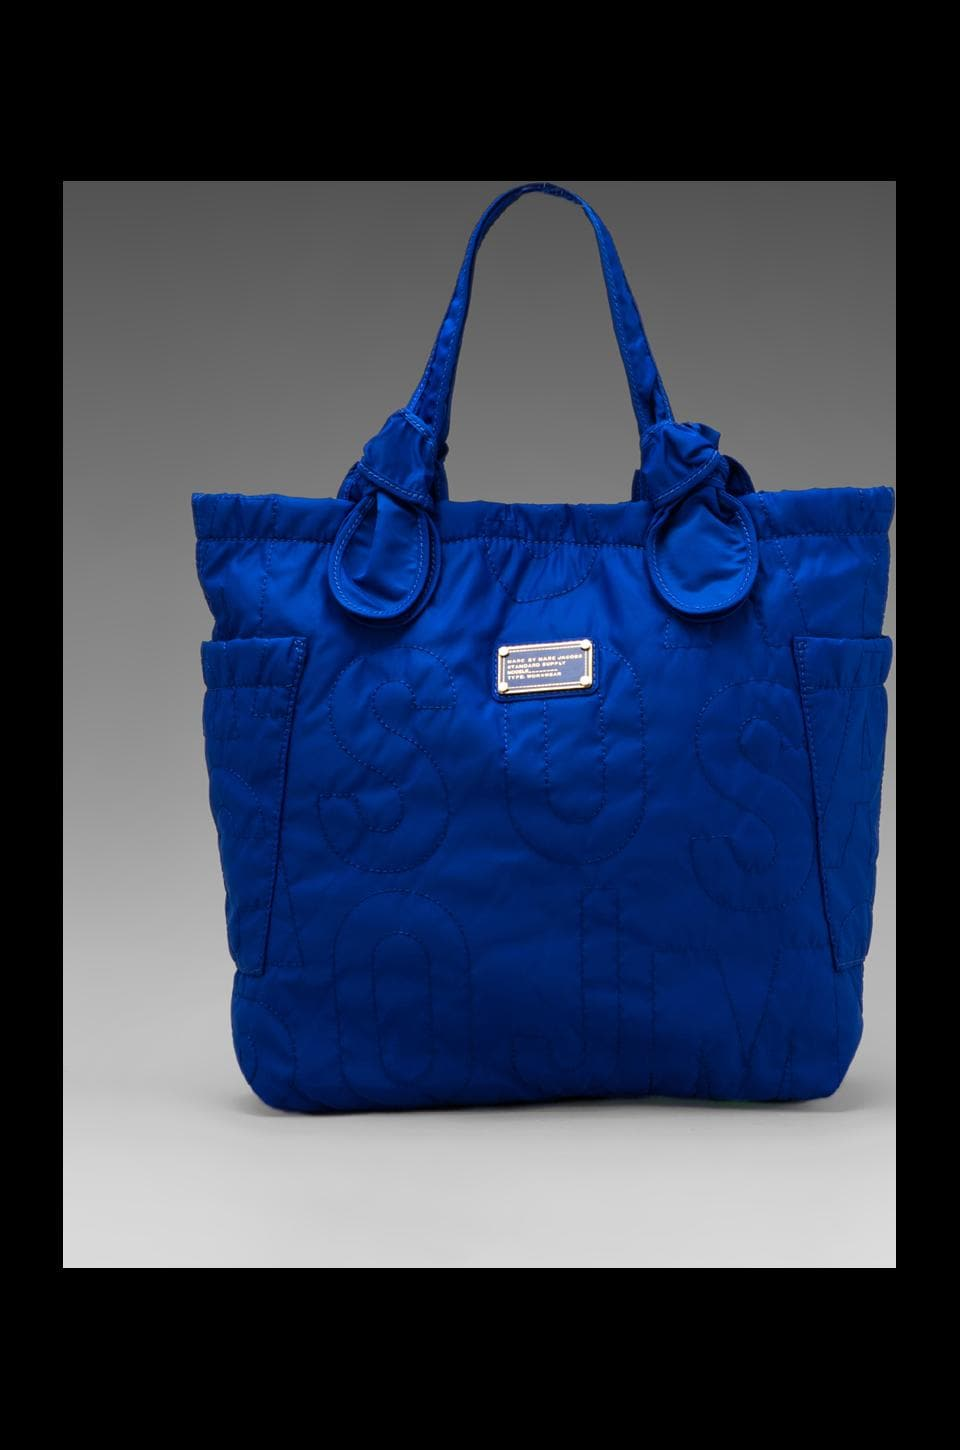 Marc by Marc Jacobs Pretty Nylon Medium Tote in Bauhaus Blue